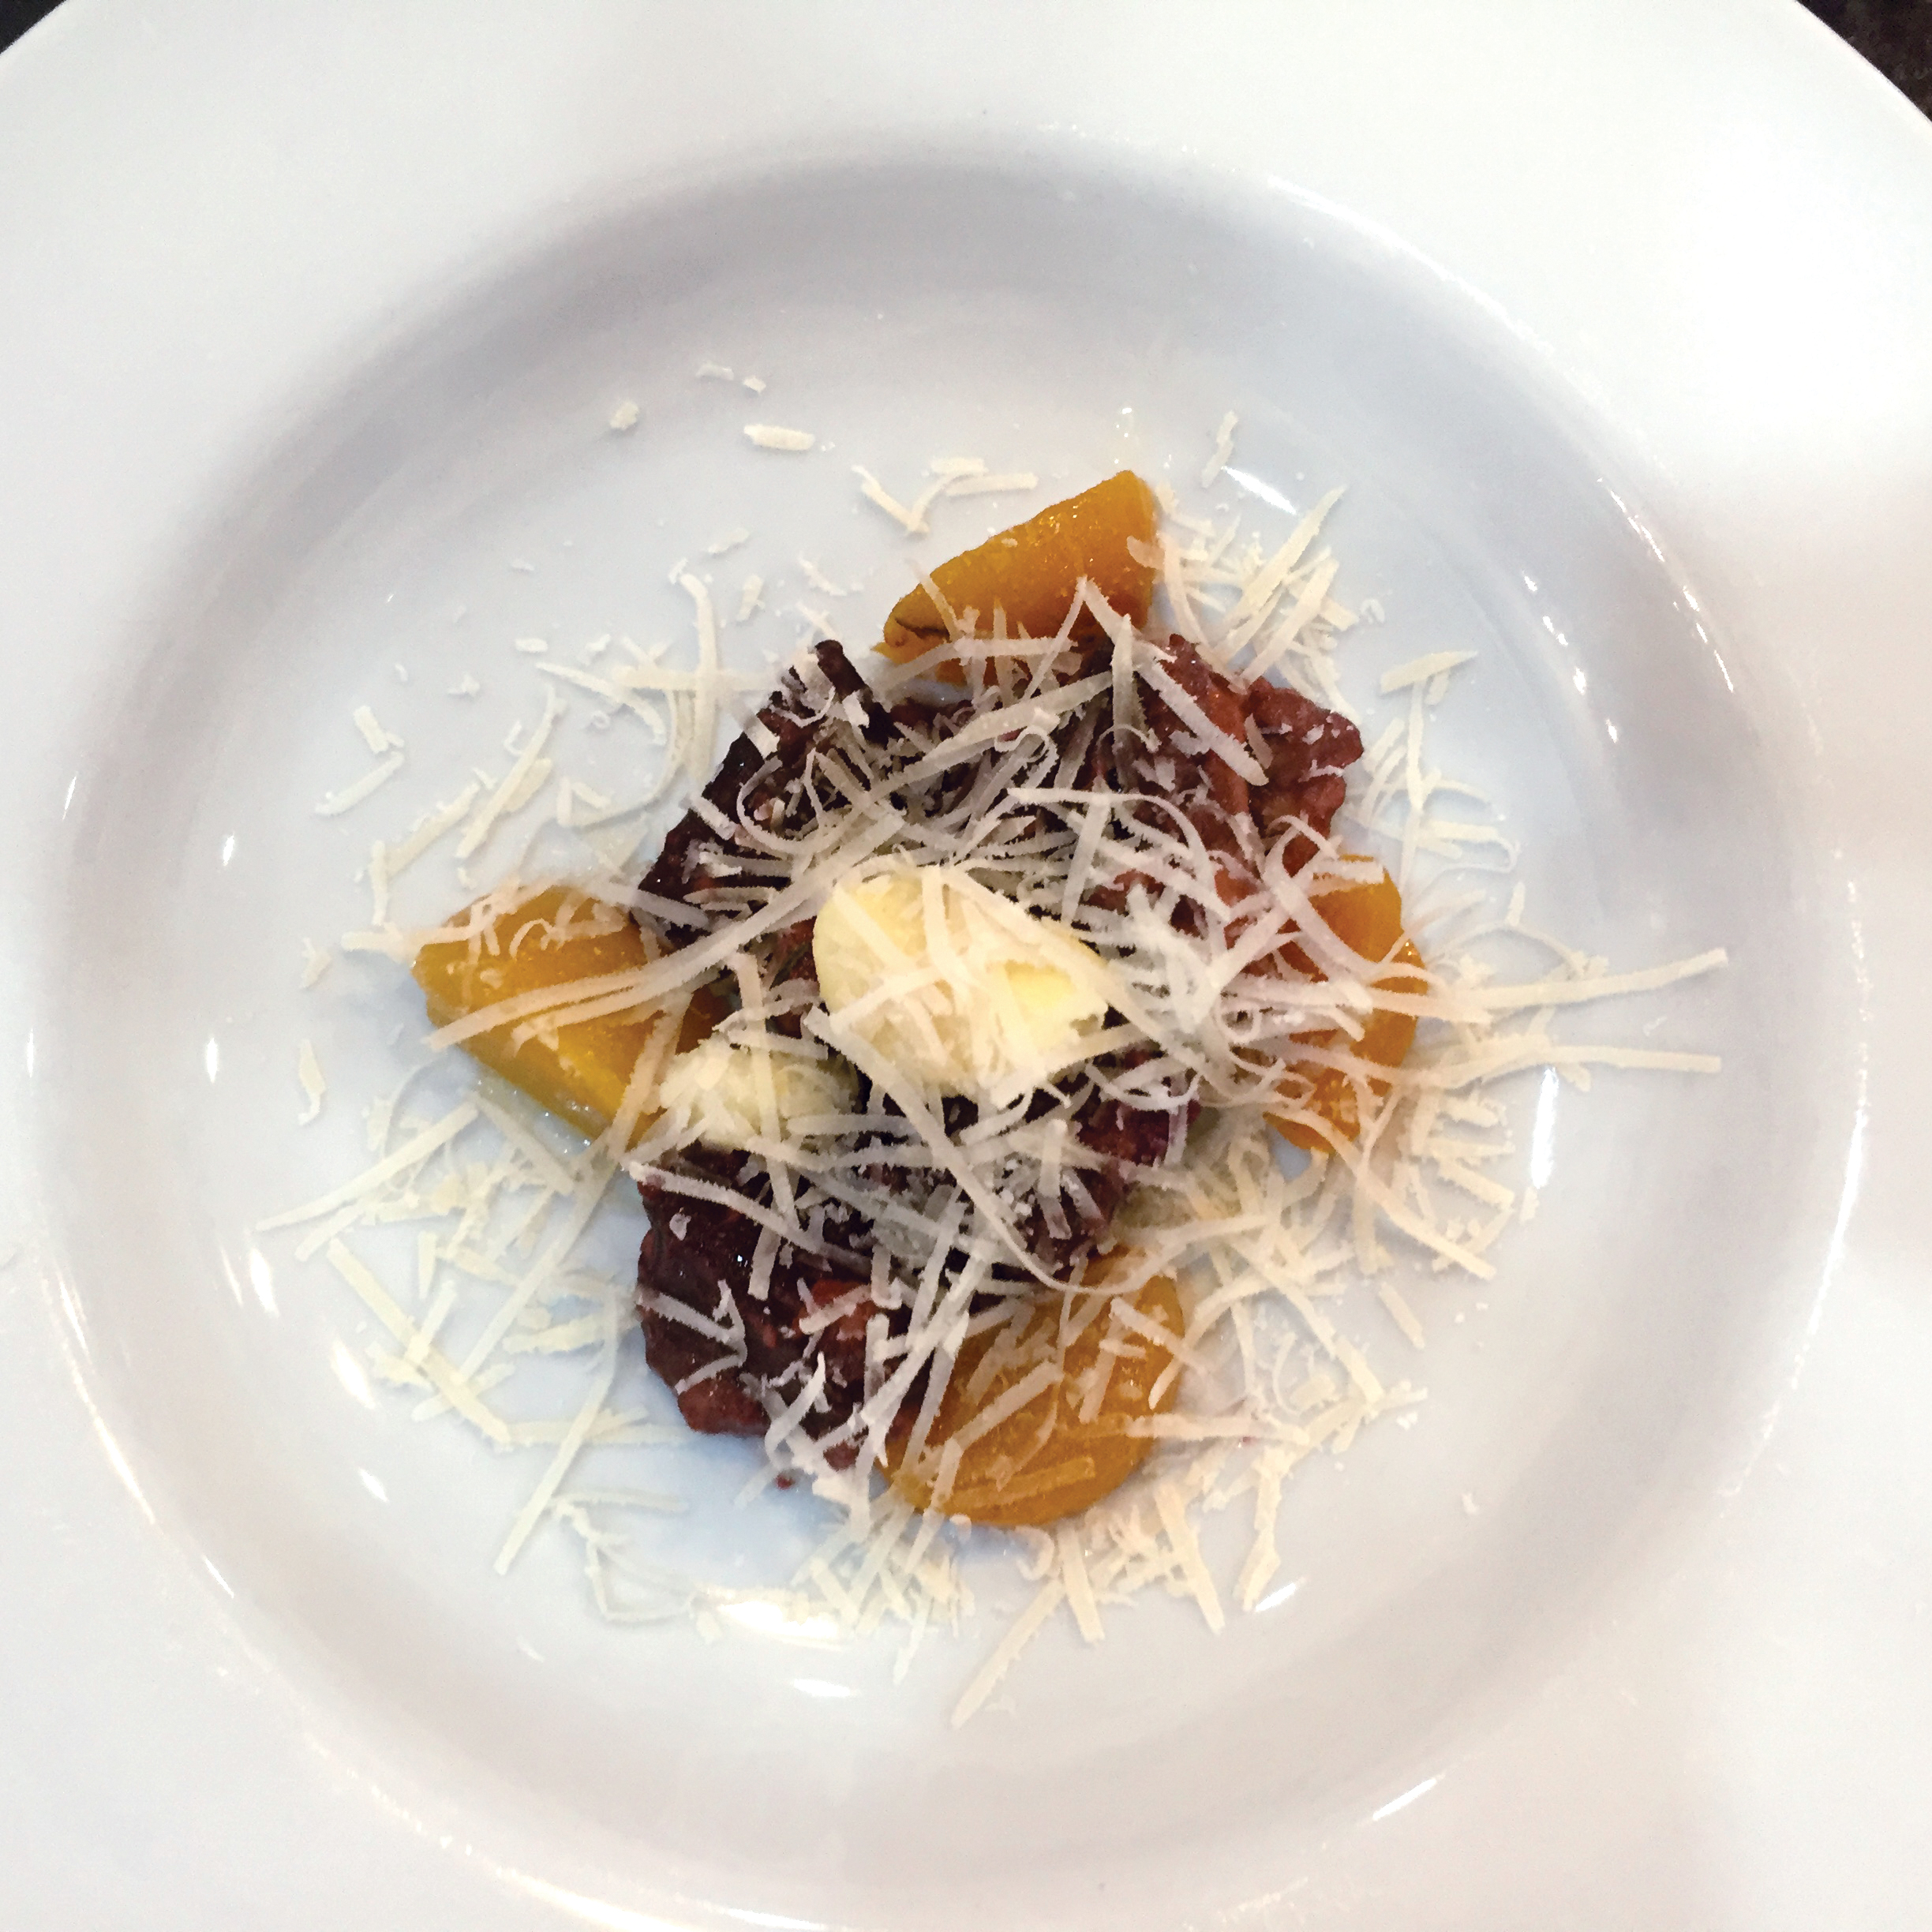 Housemade Gnocchi with Beets & Parmesan